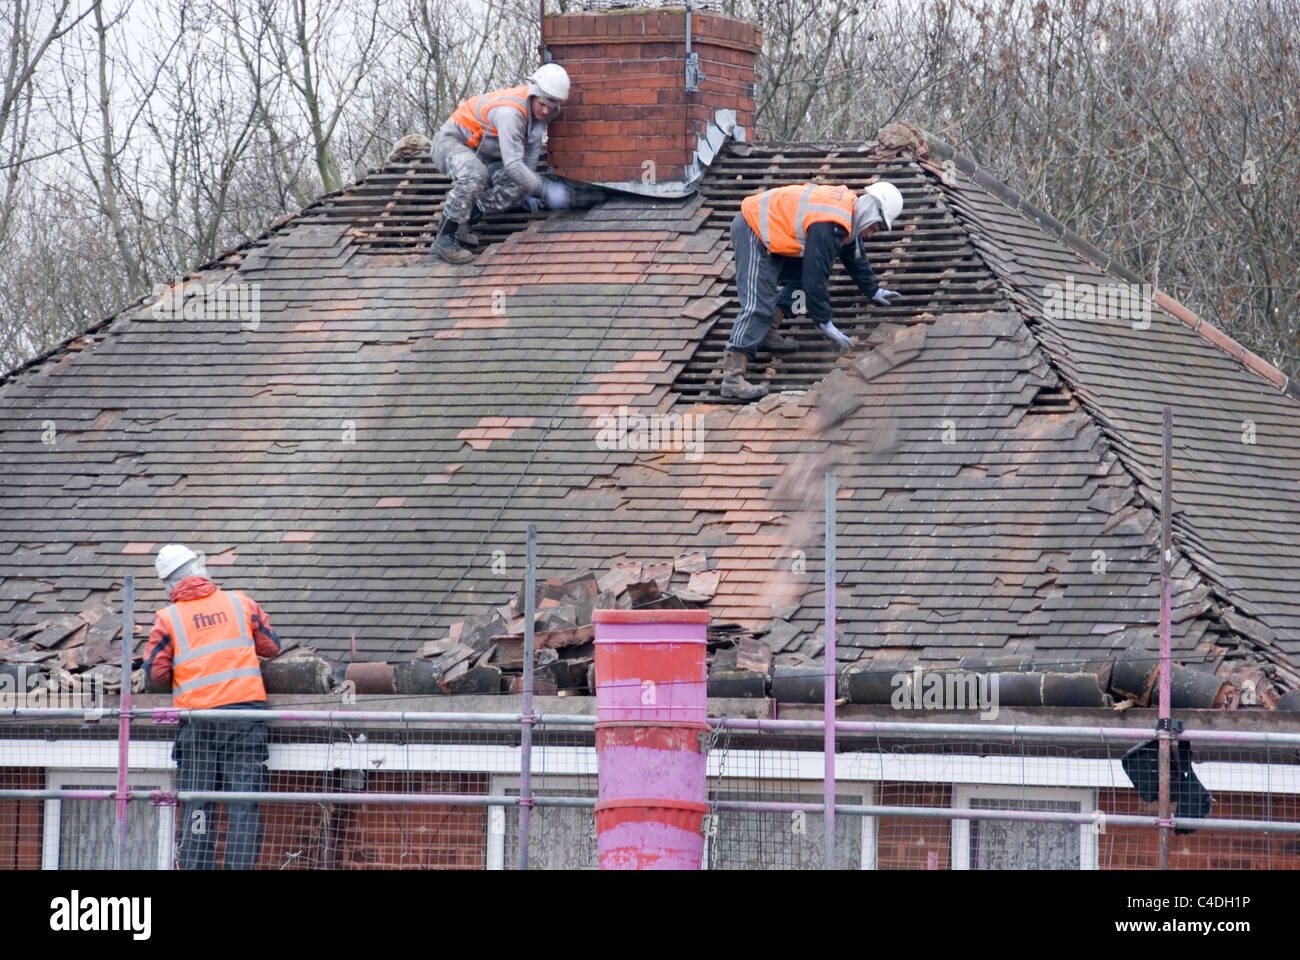 https://i2.wp.com/c8.alamy.com/comp/C4DH1P/three-men-roof-of-house-roof-stripping-off-old-tiles-re-roofing-acis-C4DH1P.jpg